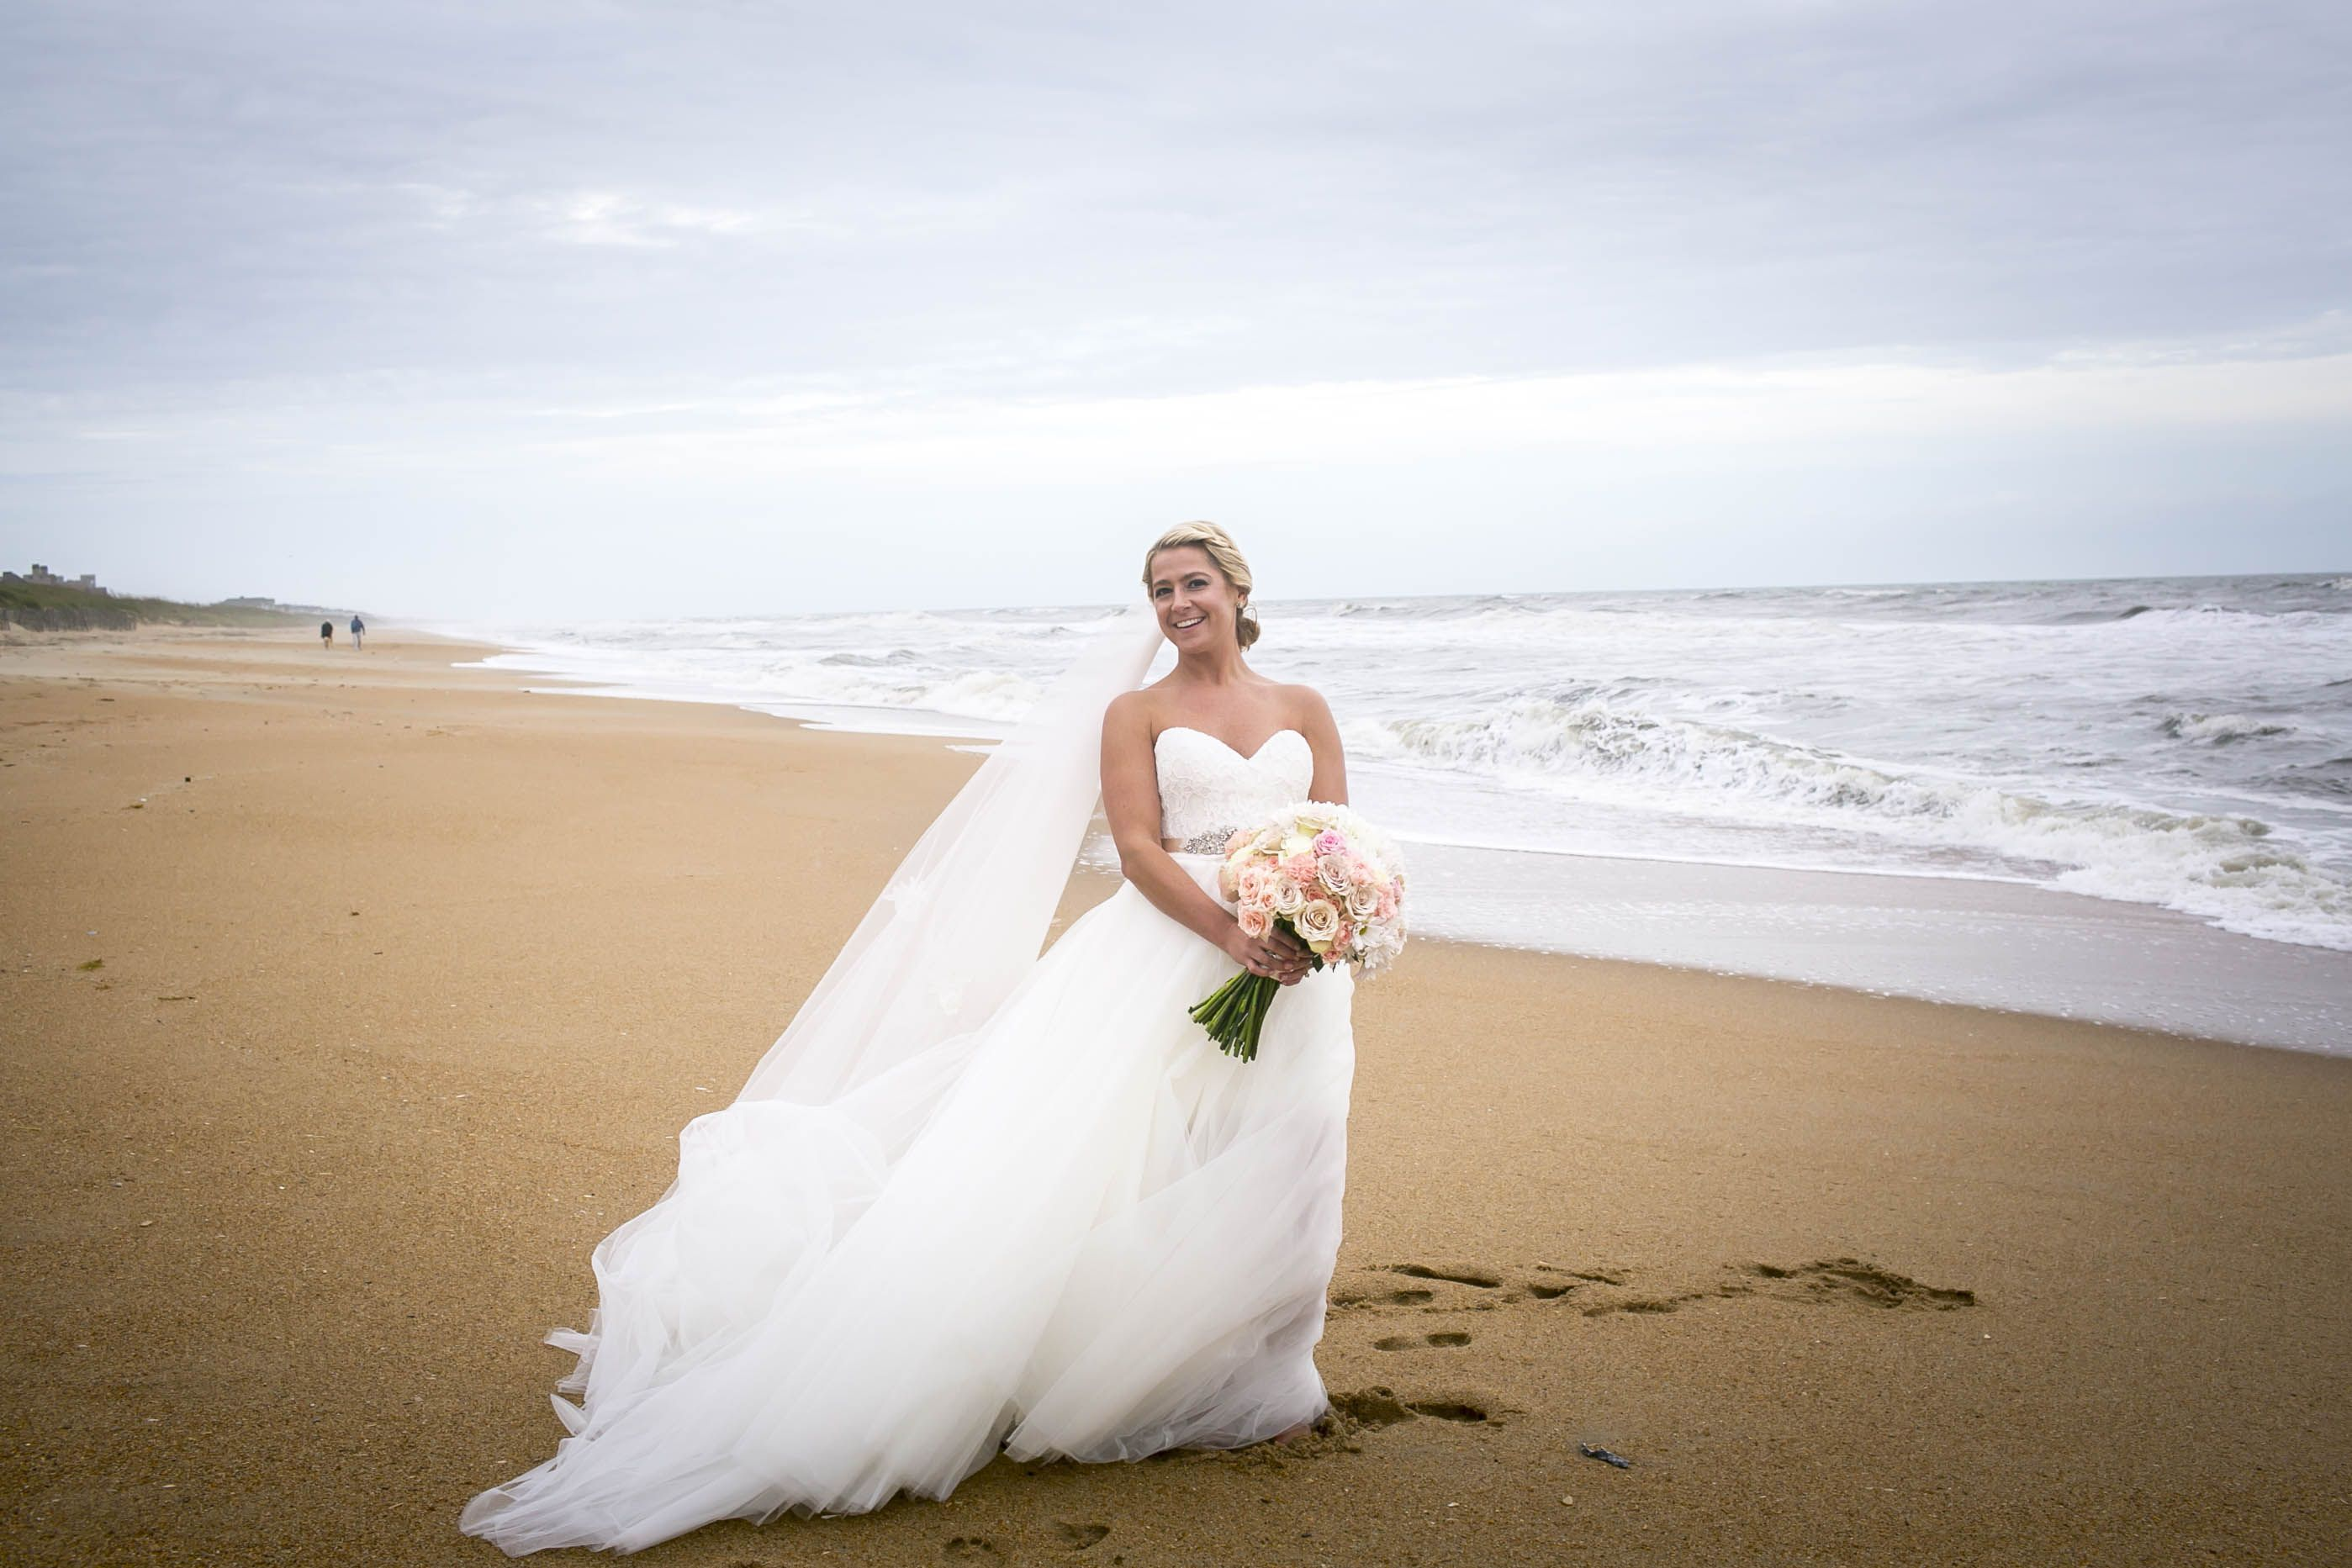 Beach wedding looks  Kick Off Your Forever With A Love Filled Wedding On The Beach  My